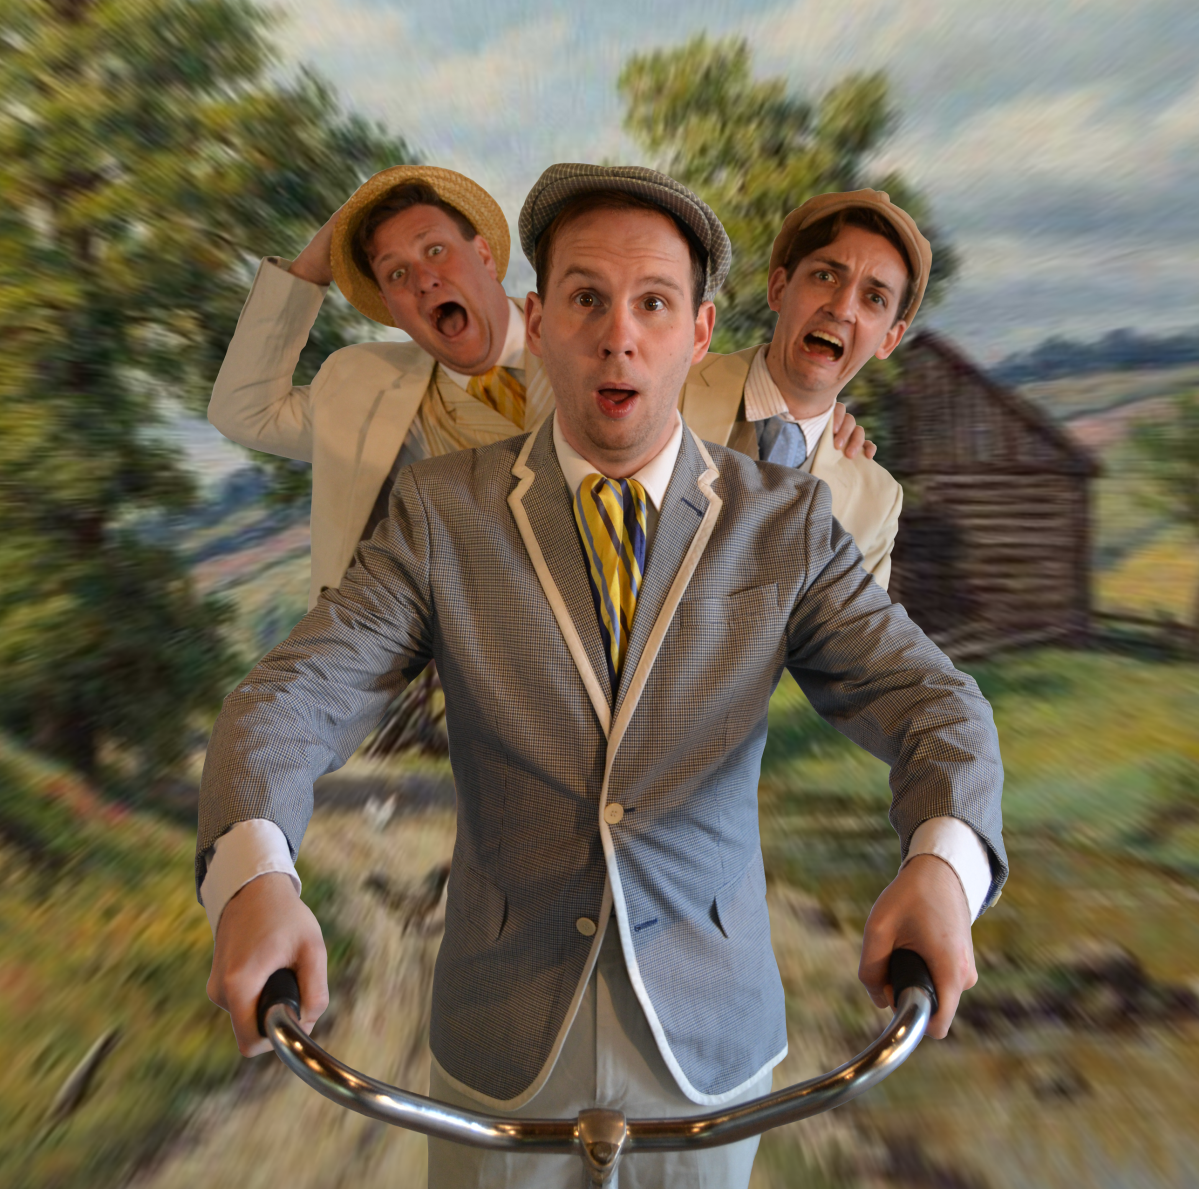 Toronto Fringe: Victorian bicycle tour shenanigans in the hilarious, entertaining Three Men on a Bike